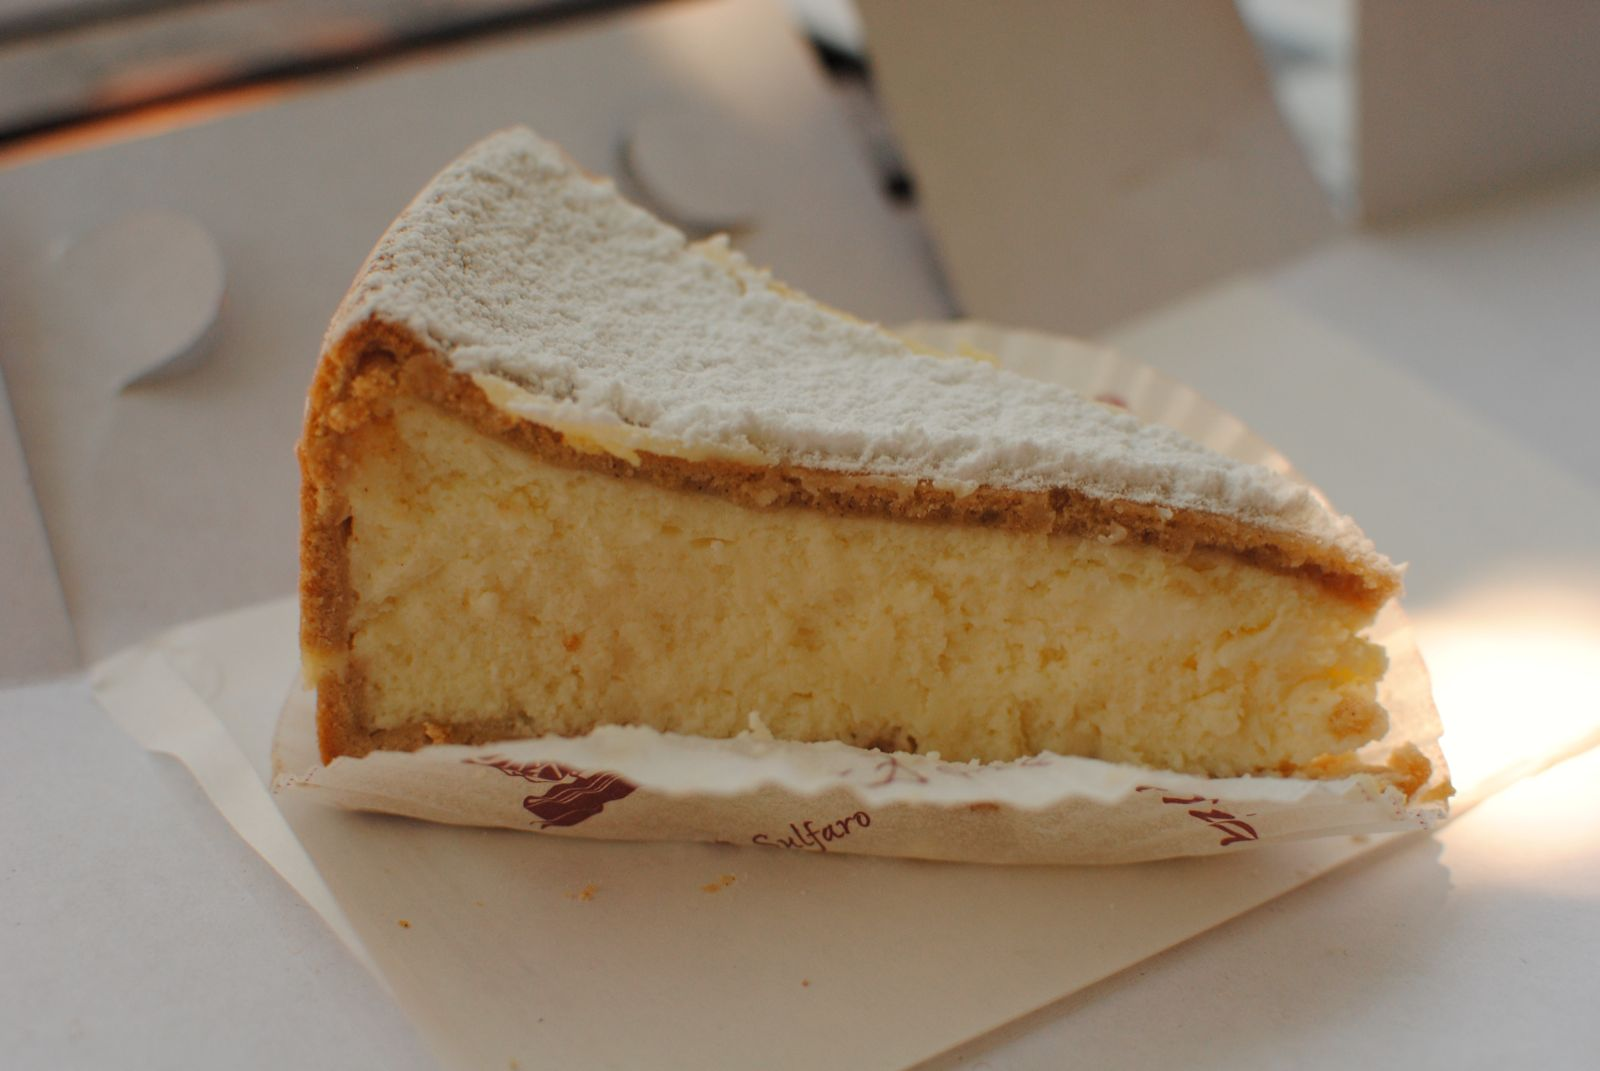 Richard Elliot's Blog: Haberfield Taste Off: Ricotta cheesecake